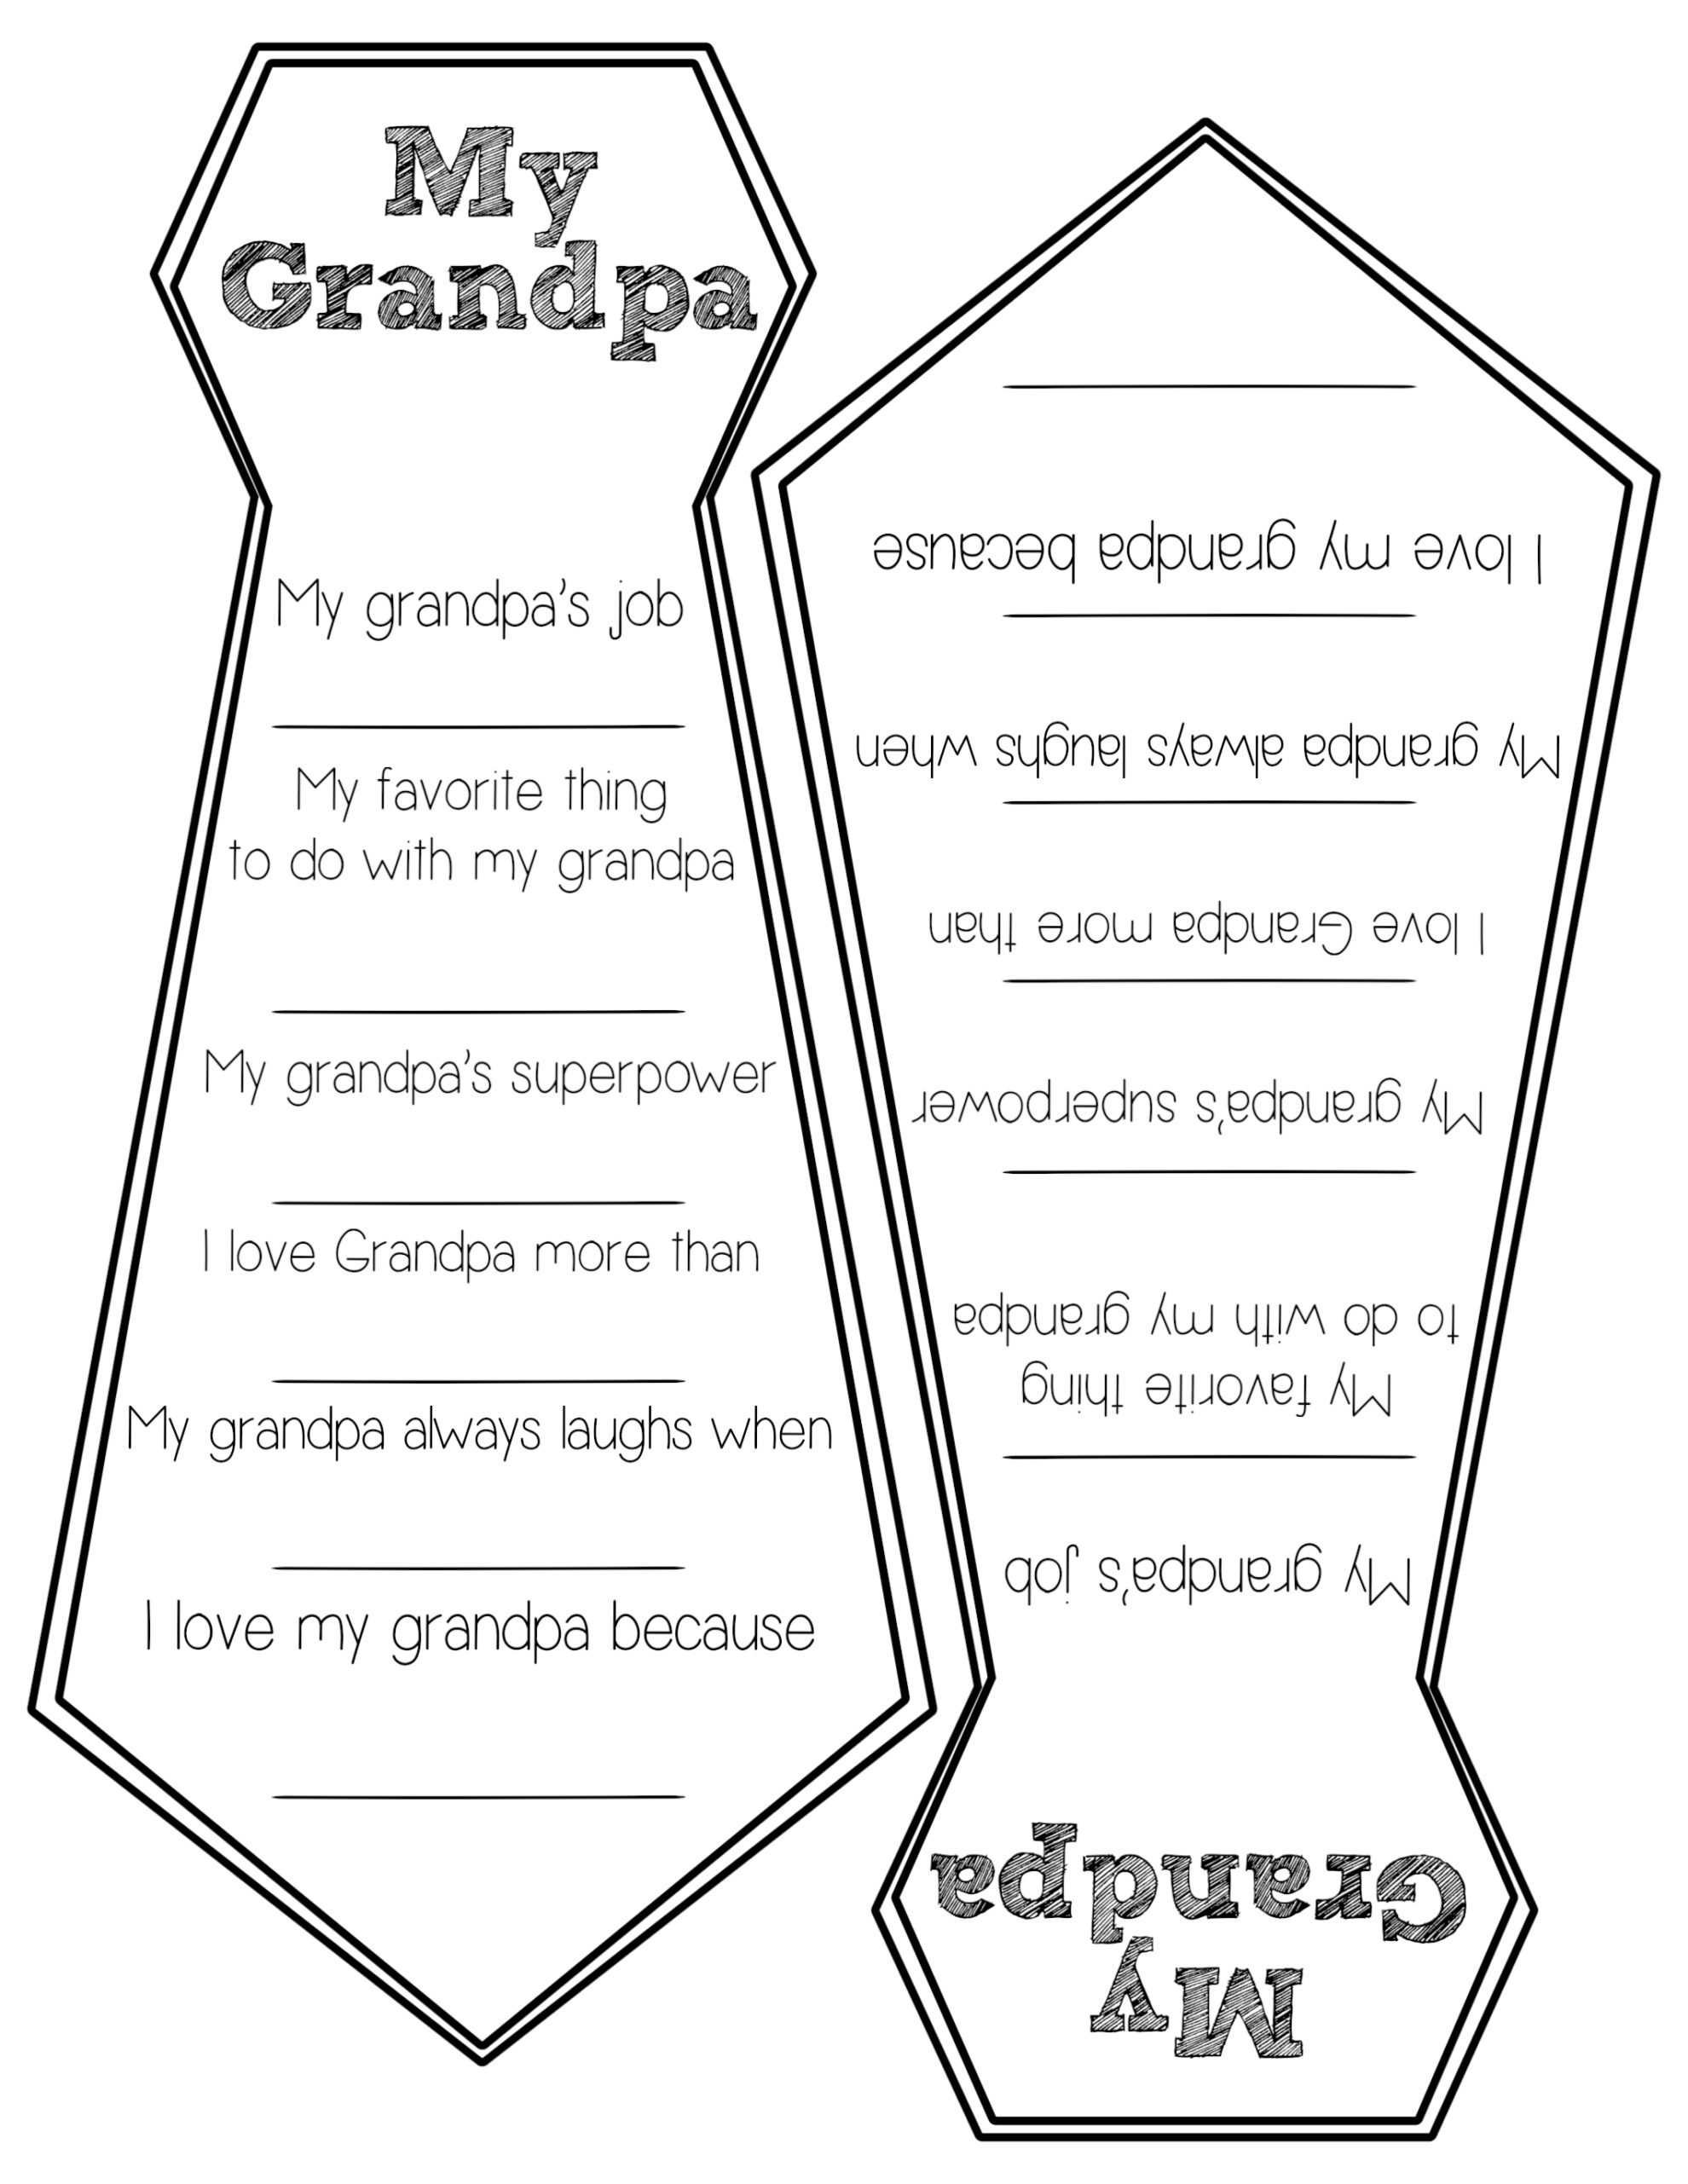 image relating to All About My Papa Printable identify Fathers Working day Free of charge Printable Playing cards - Paper Path Design and style